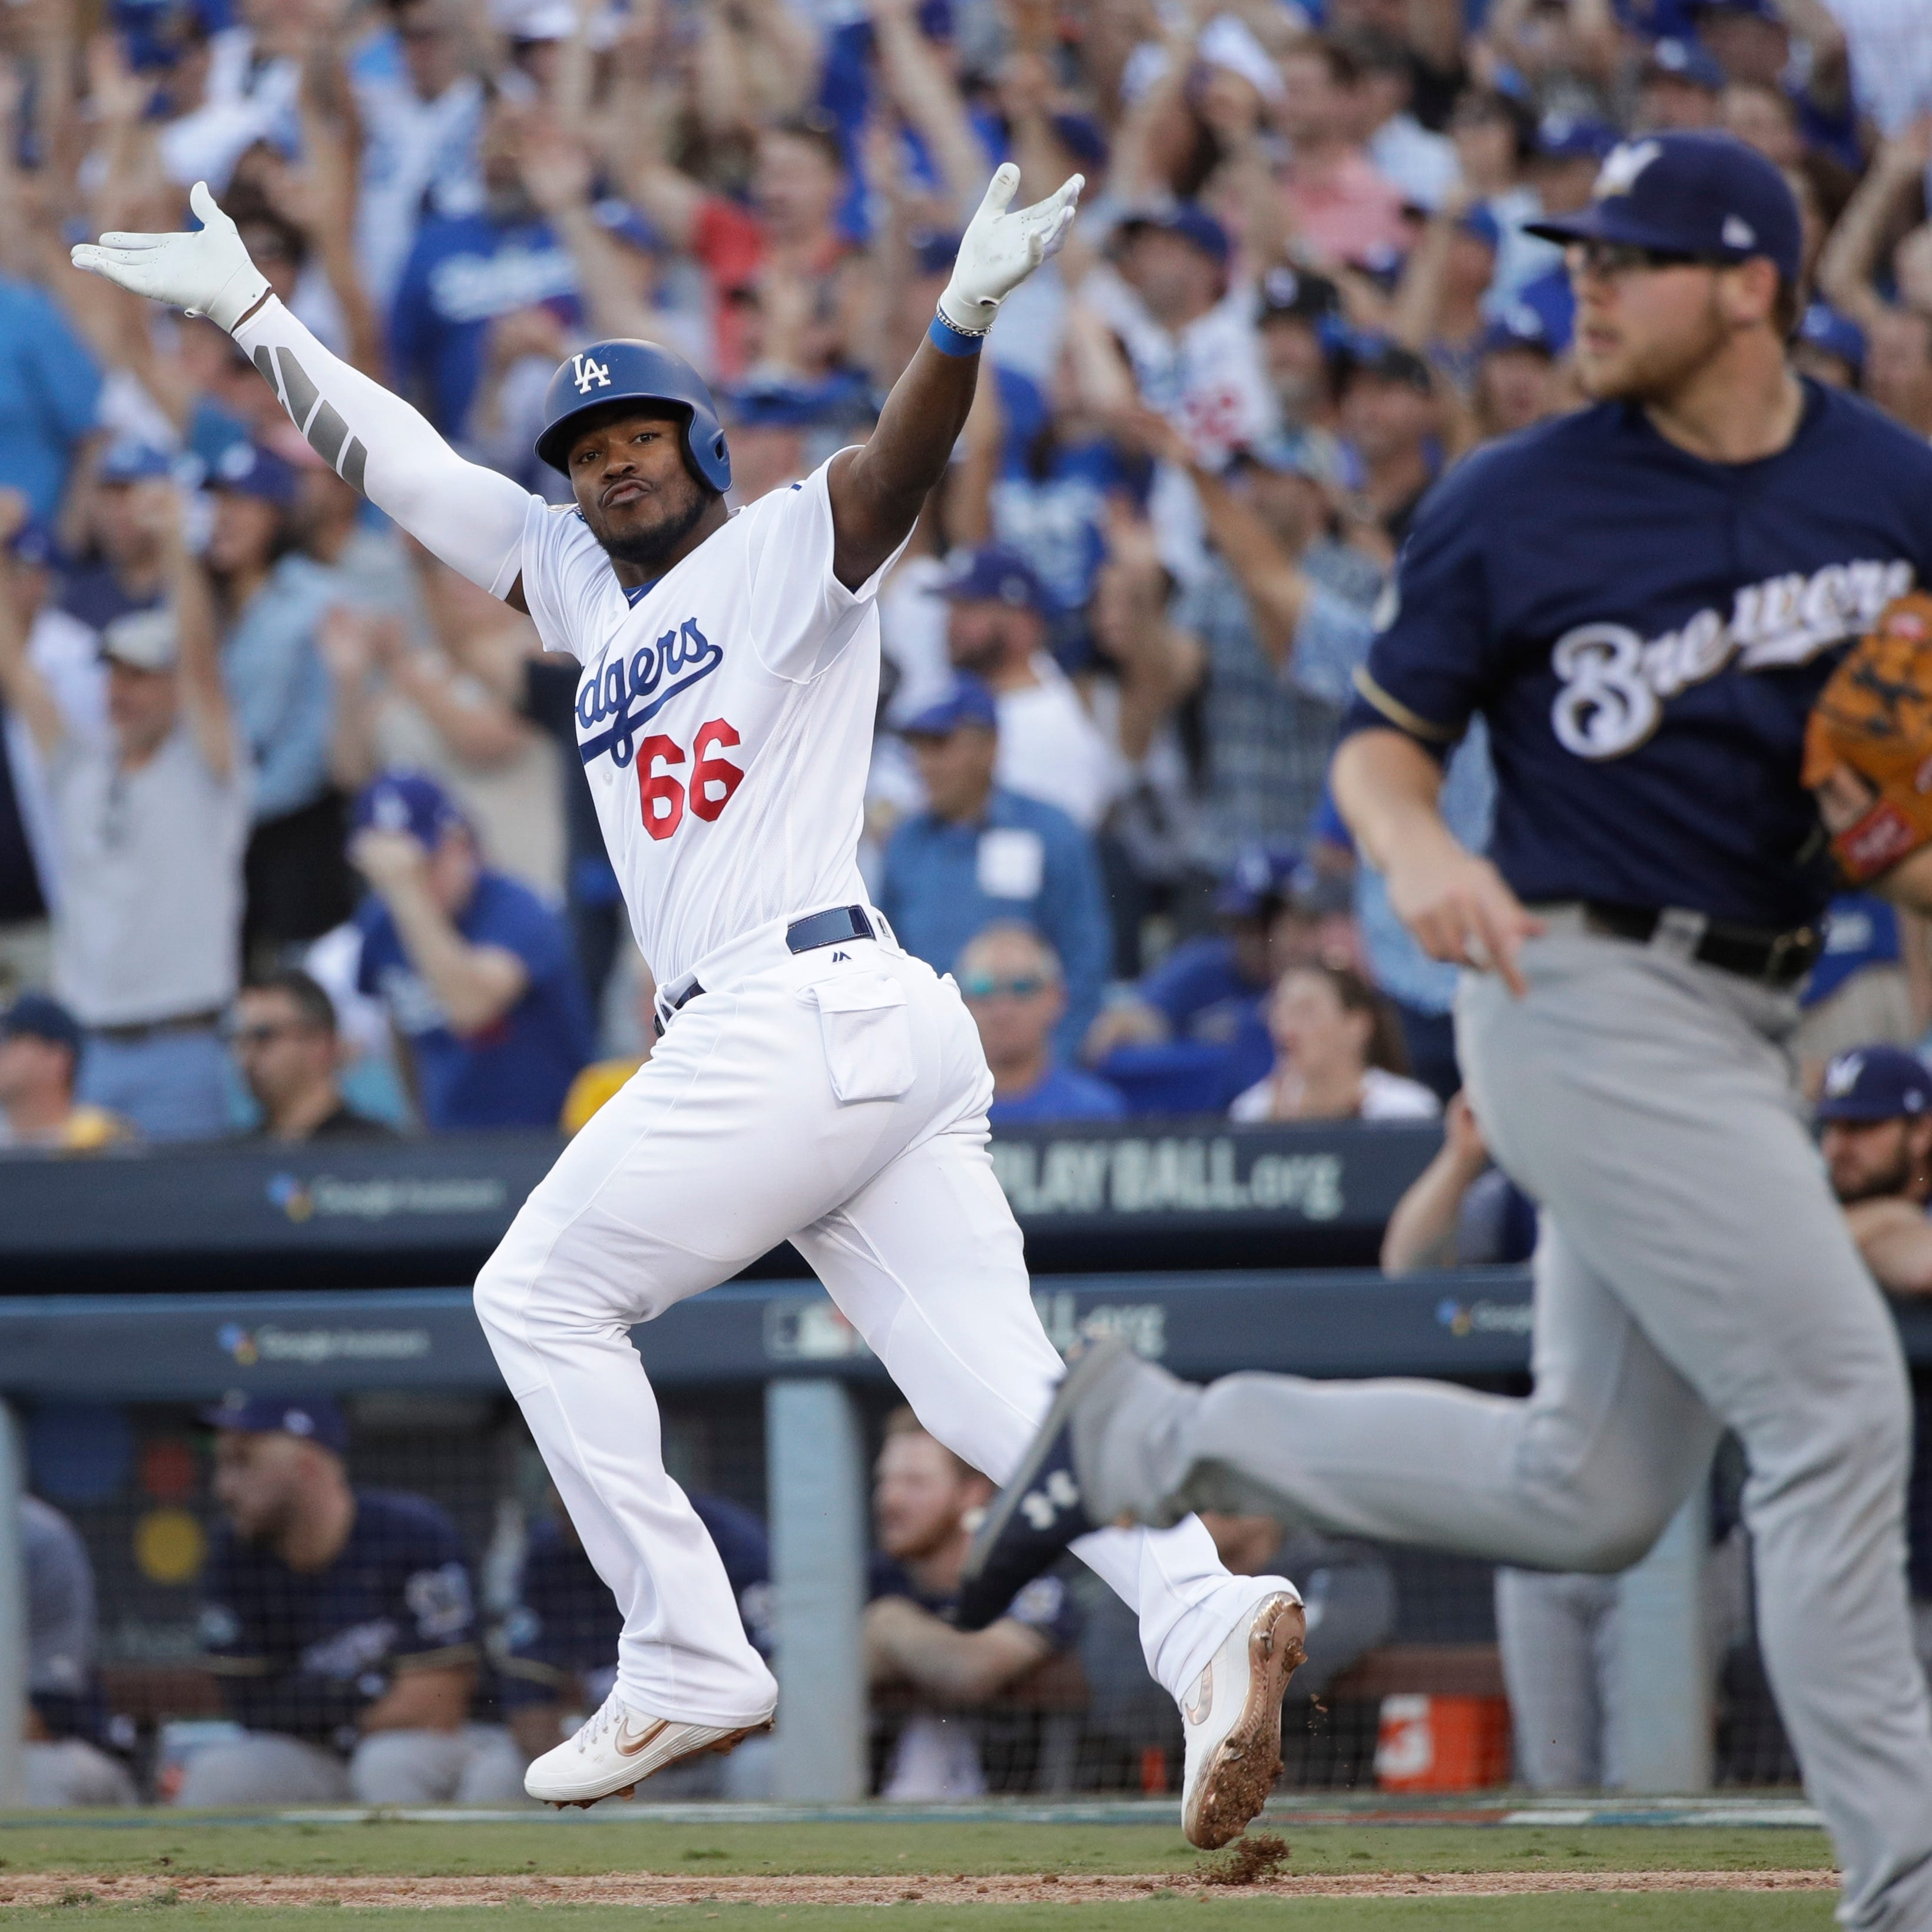 Dodgers 5, Brewers 2: The Brewers' offensive struggles continue in Game 5